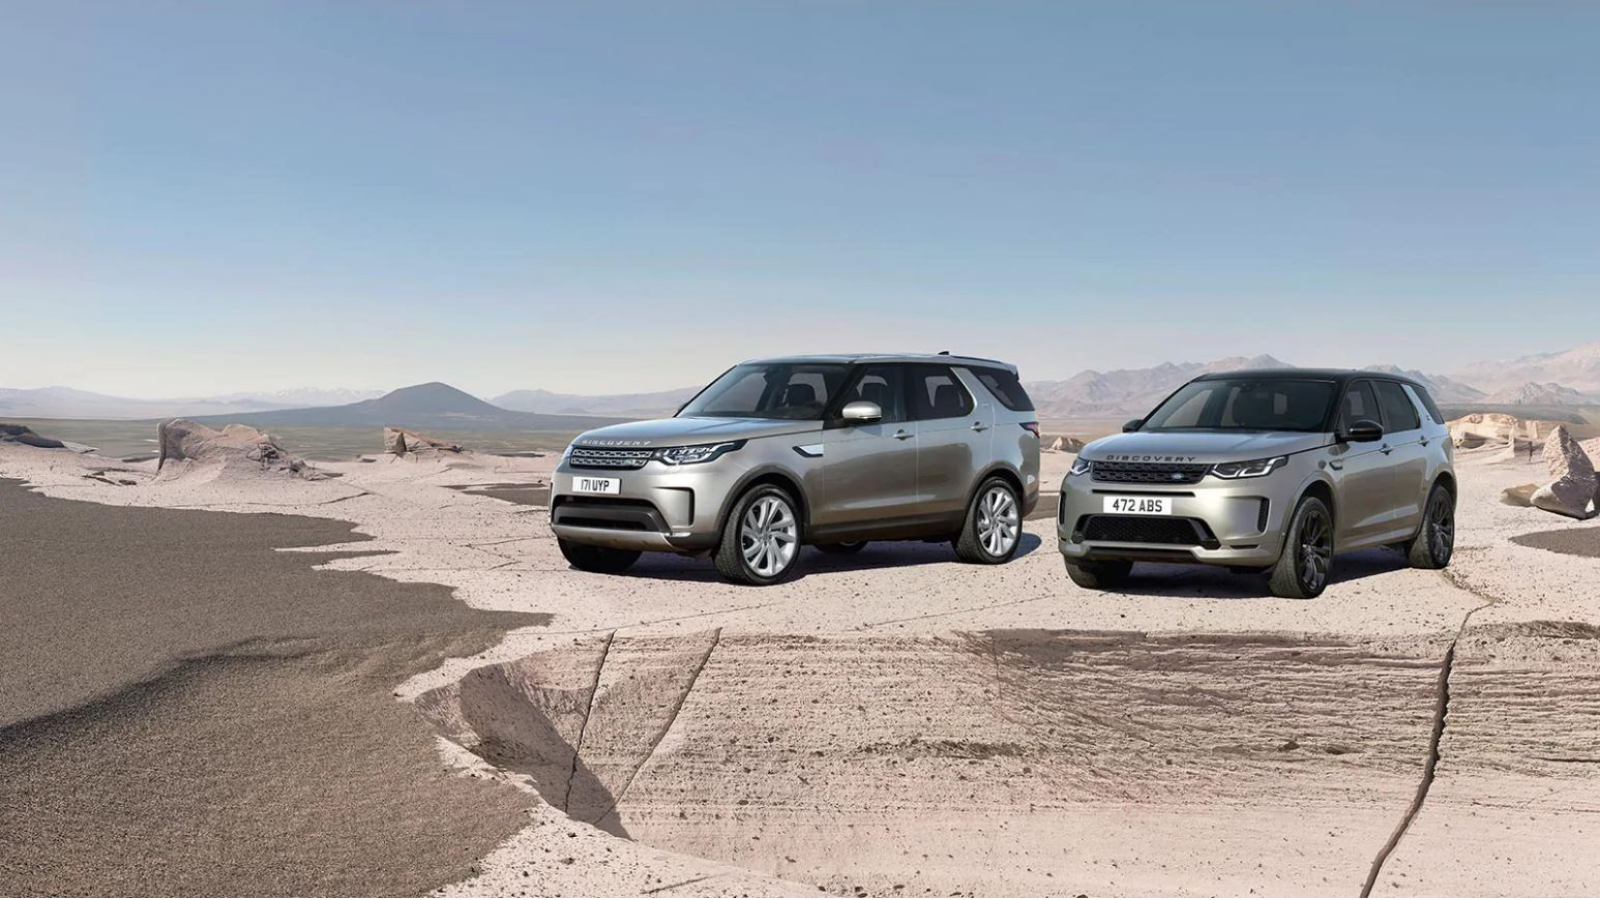 WHAT'S THE DIFFERENCE BETWEEN LAND ROVER AND RANGE ROVER?